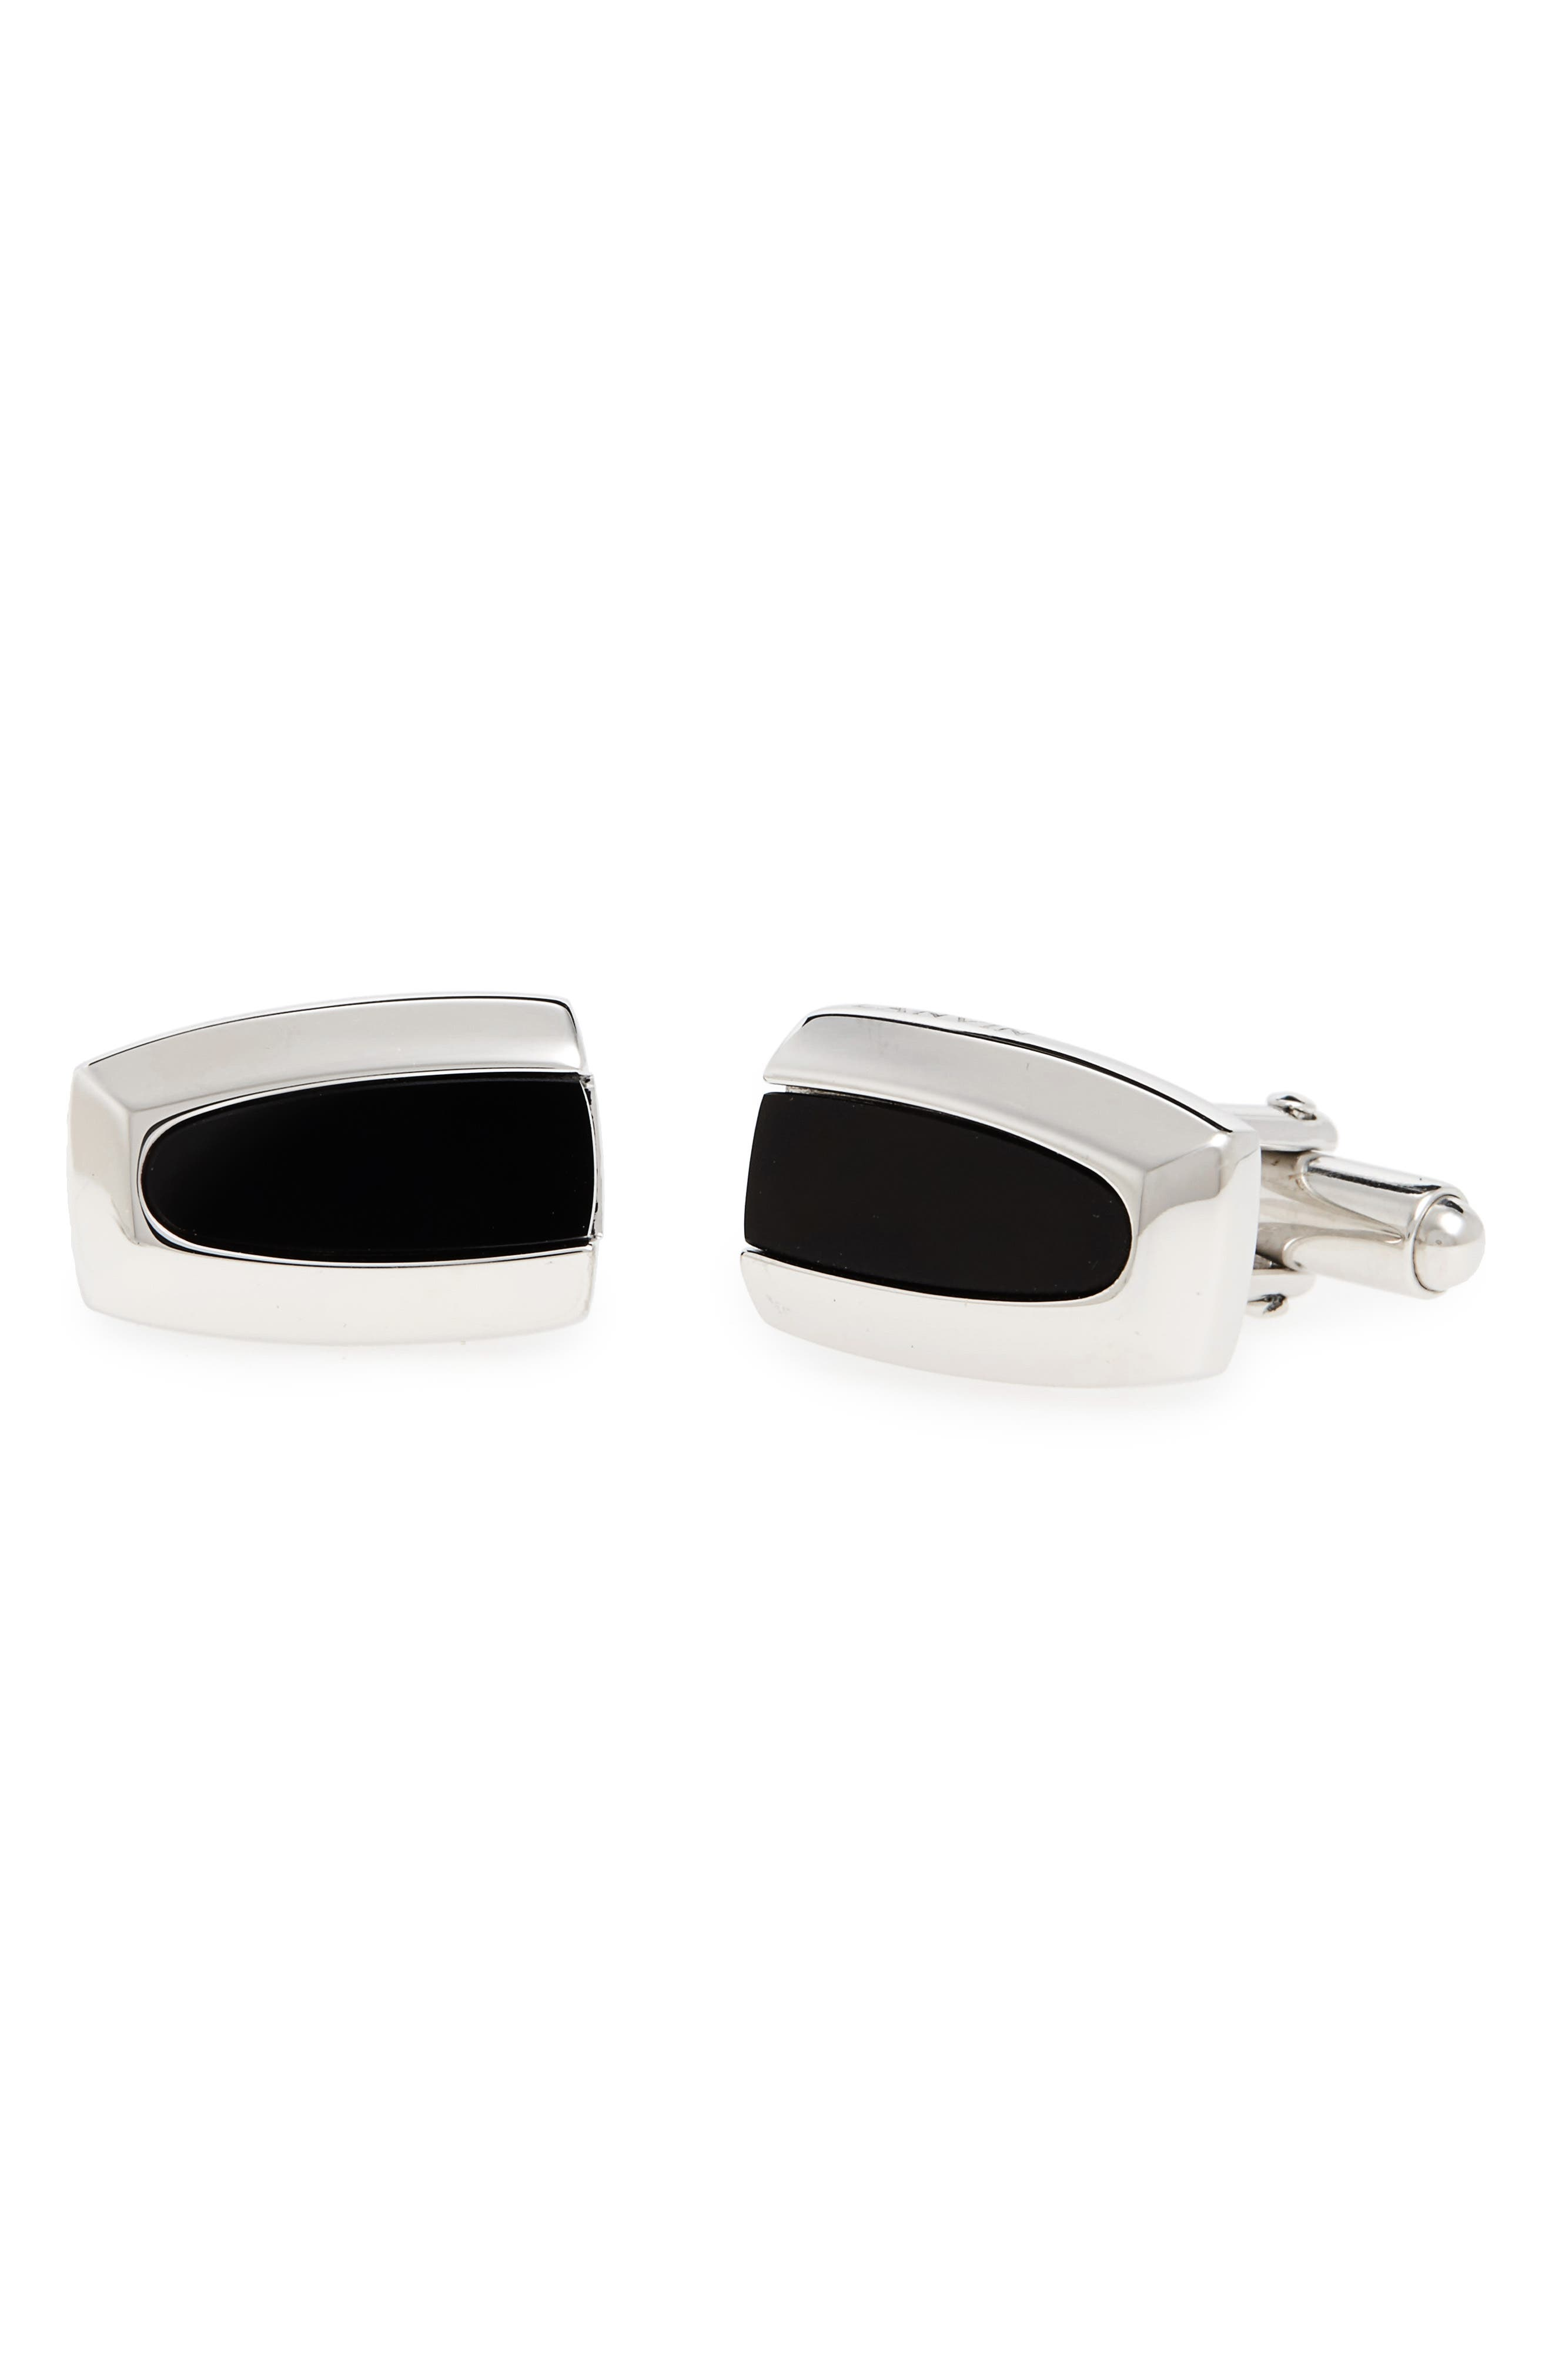 Alternate Image 1 Selected - Lanvin Onyx Cuff Links